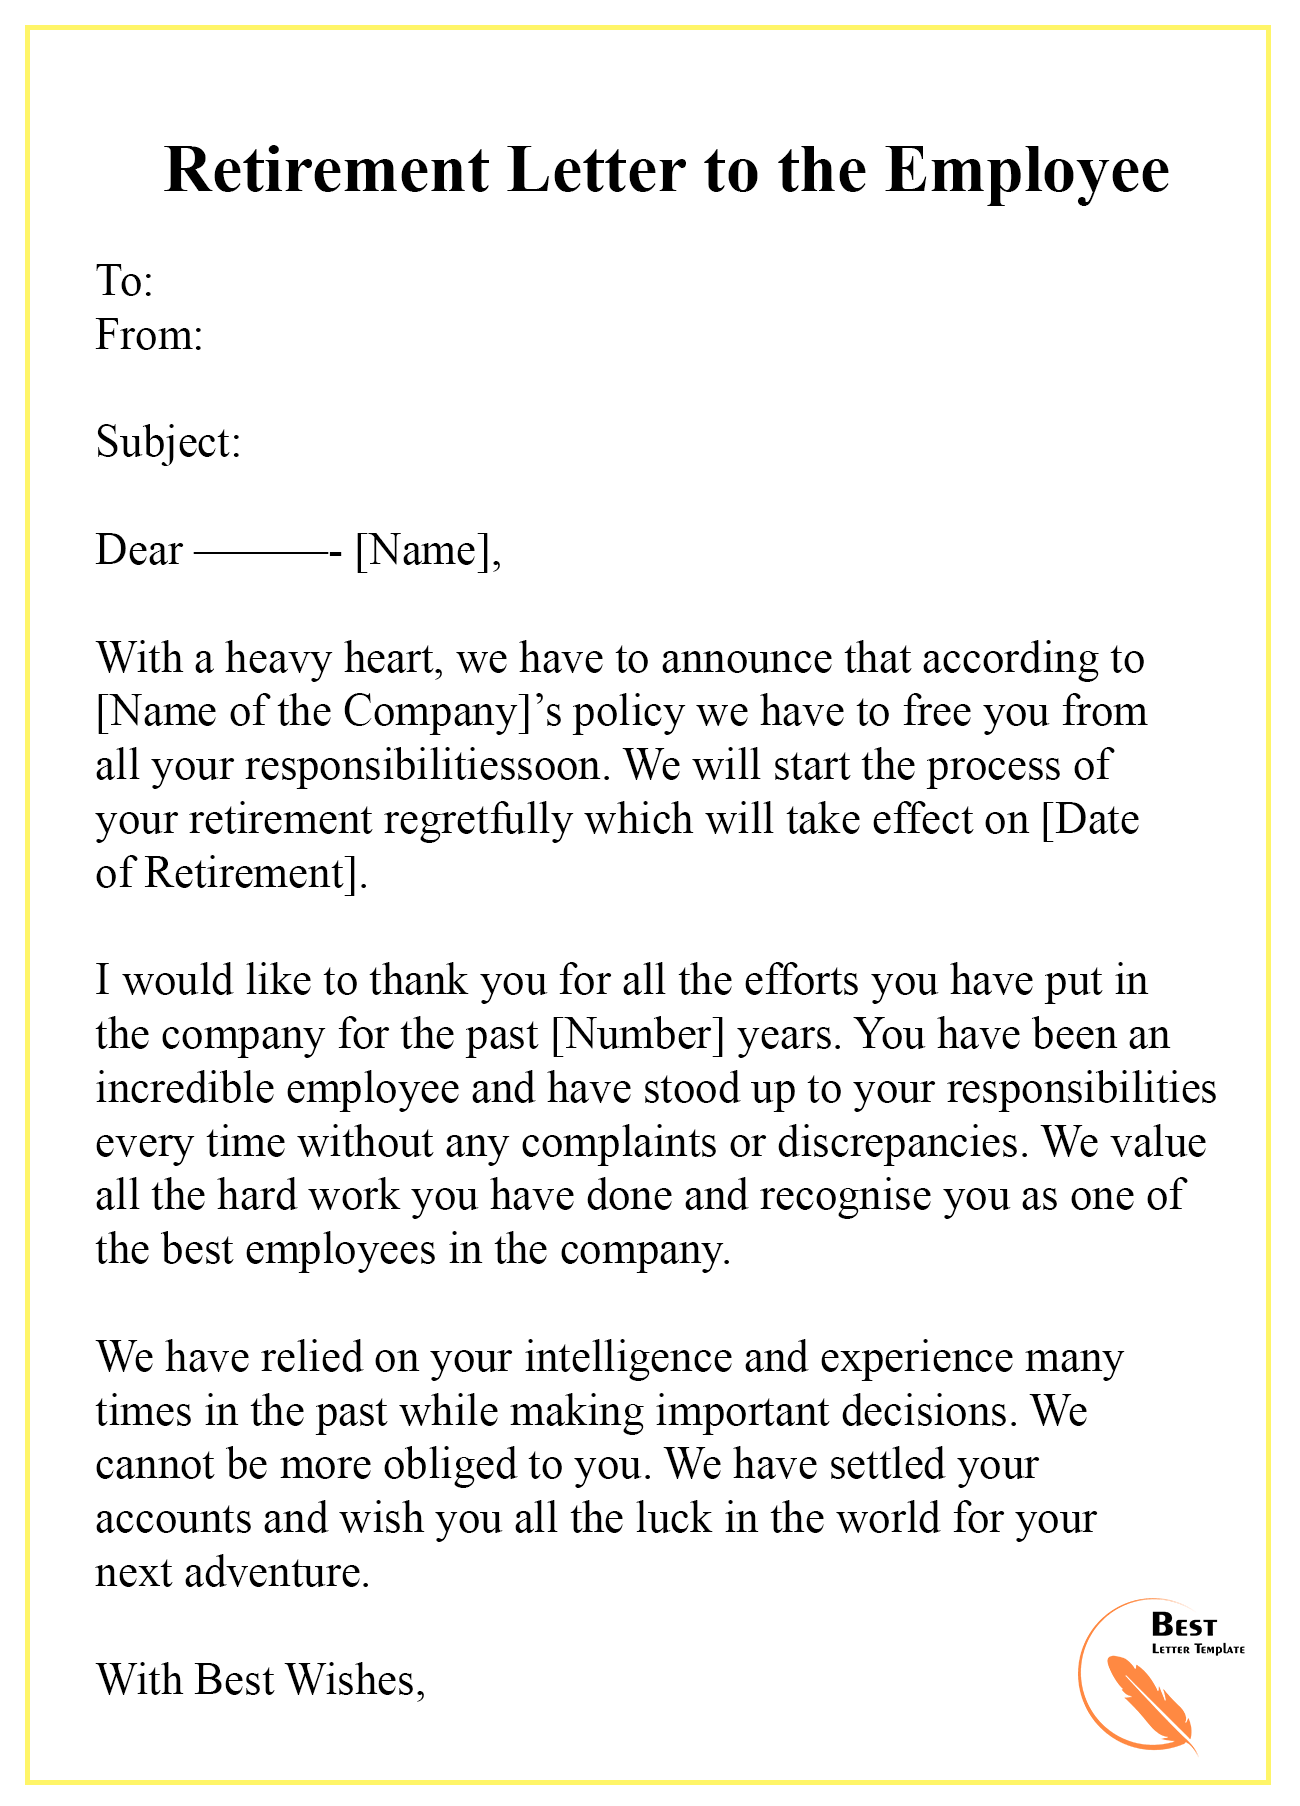 Retirement Letter To Employee From Employer from bestlettertemplate.com